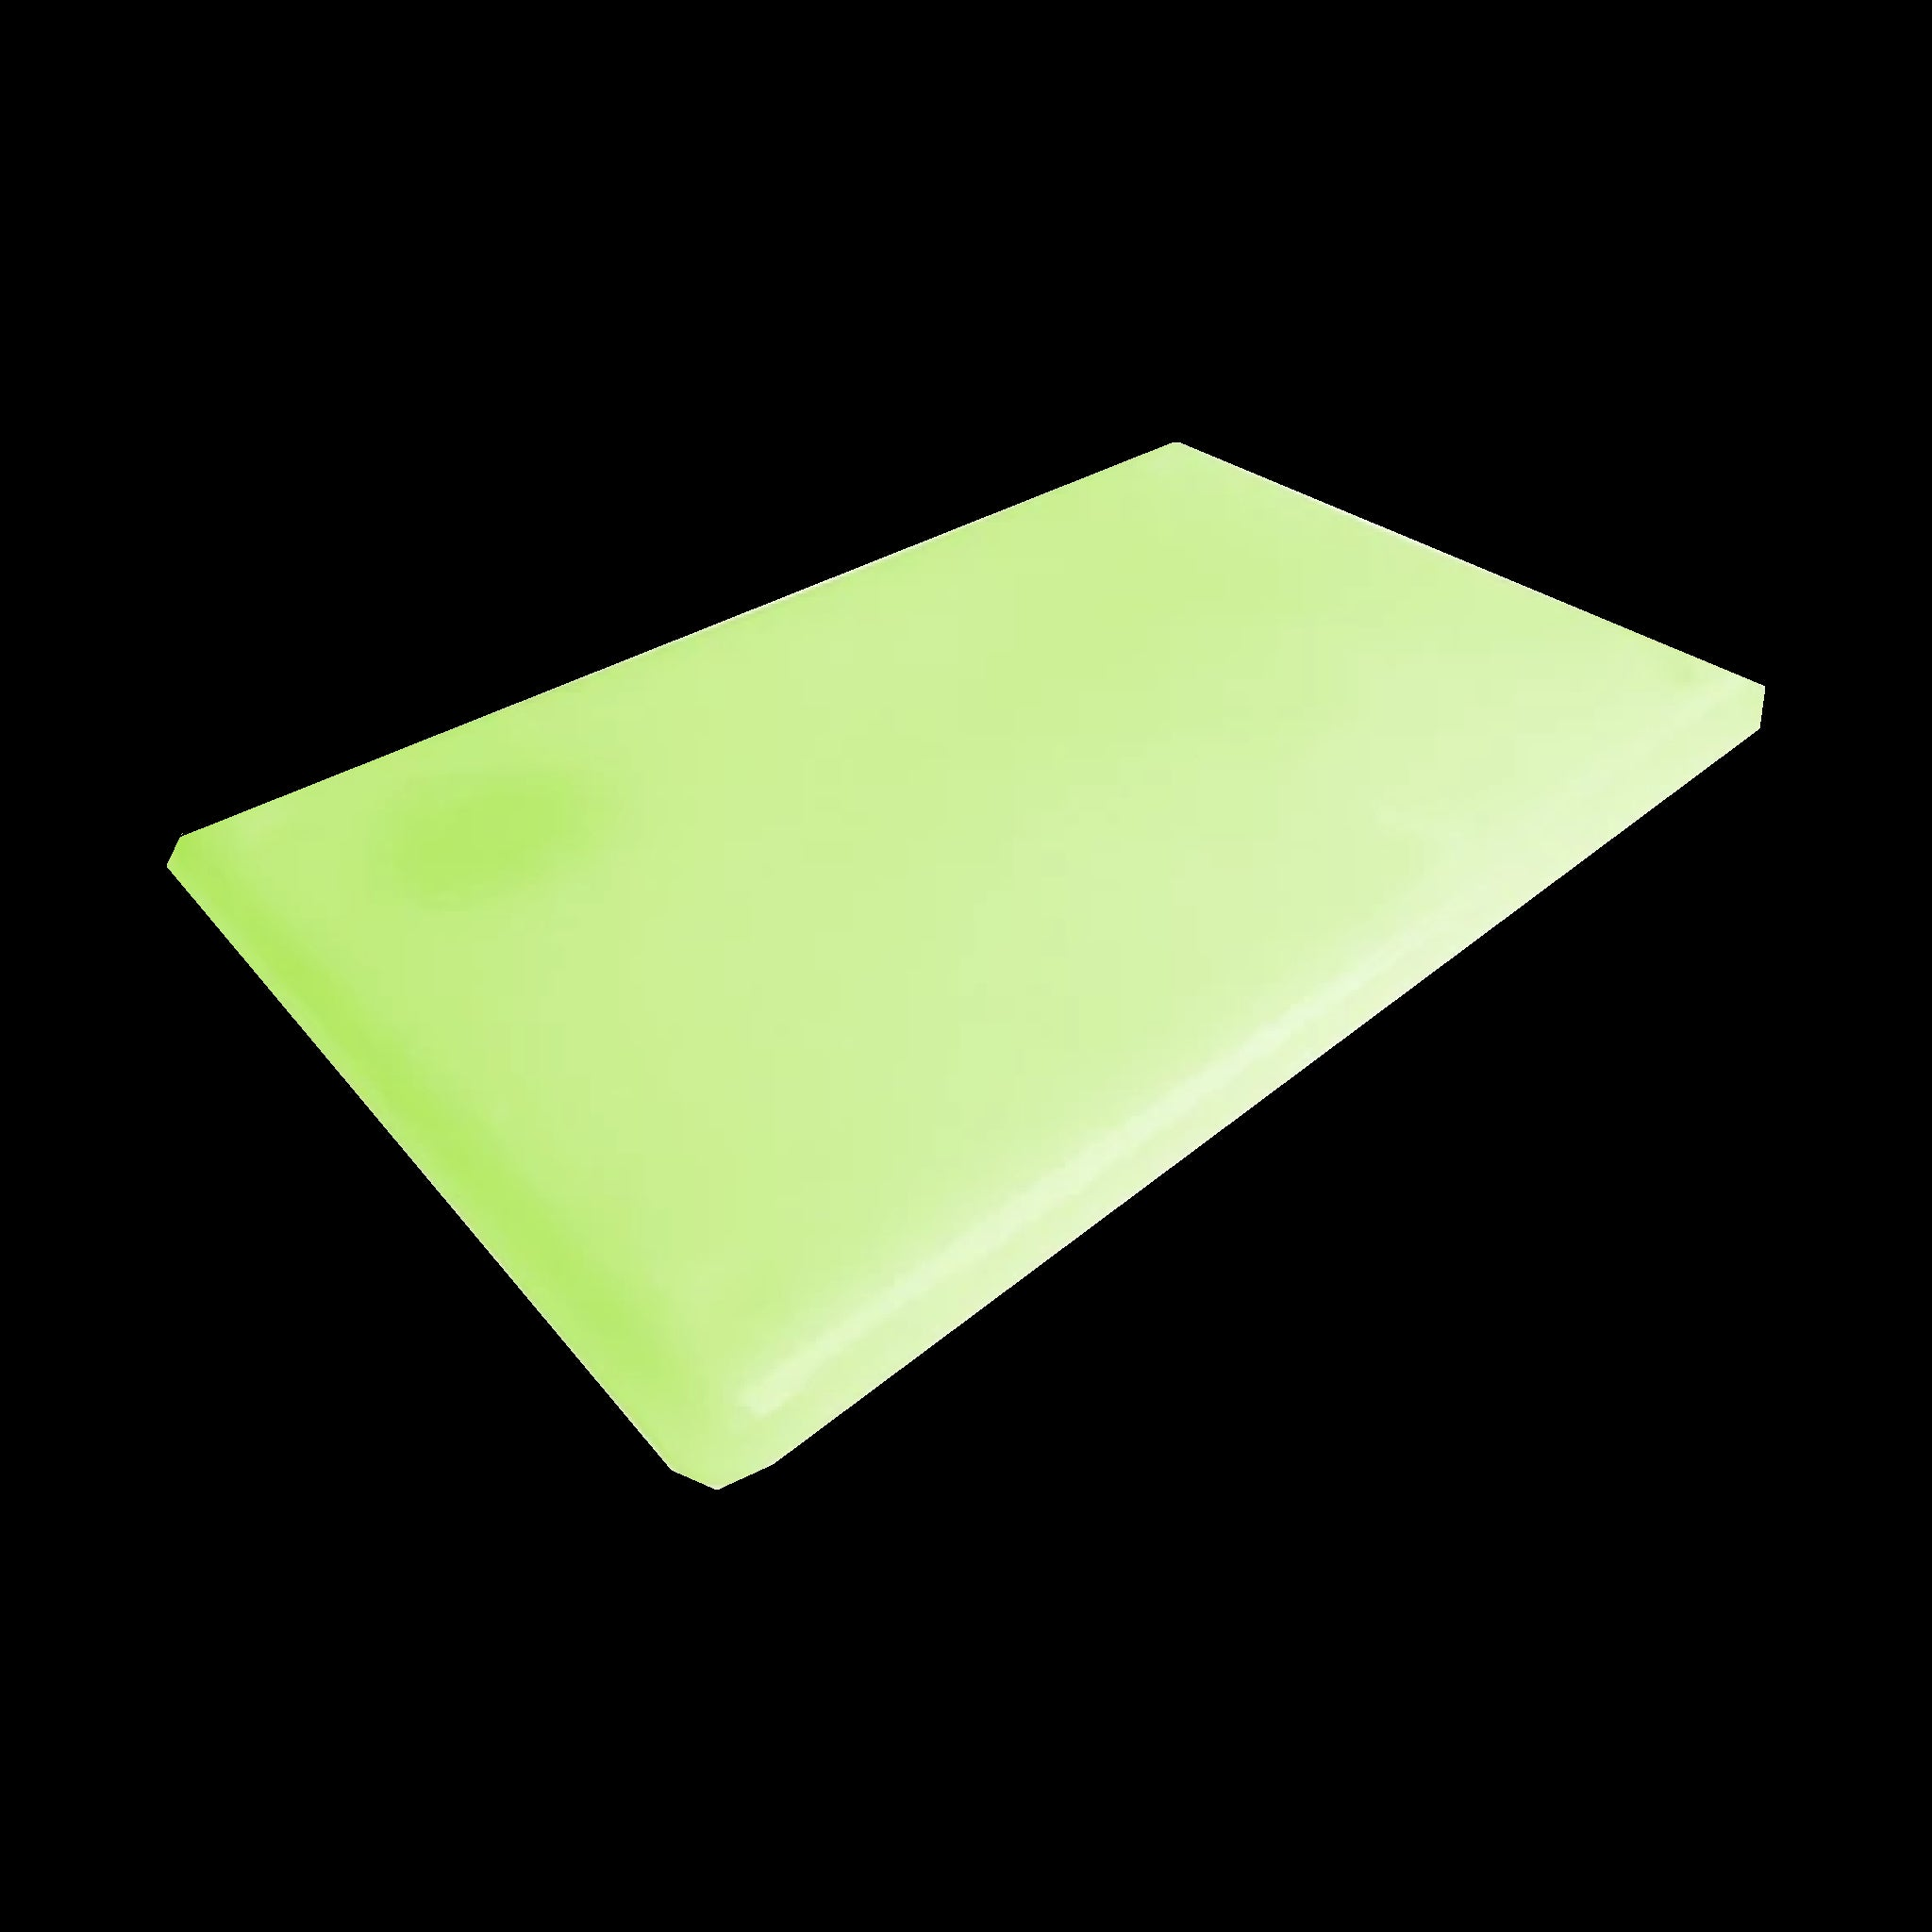 Glow in the Dark UV Rechargeable Epoxy Resin Mat (Matlite)